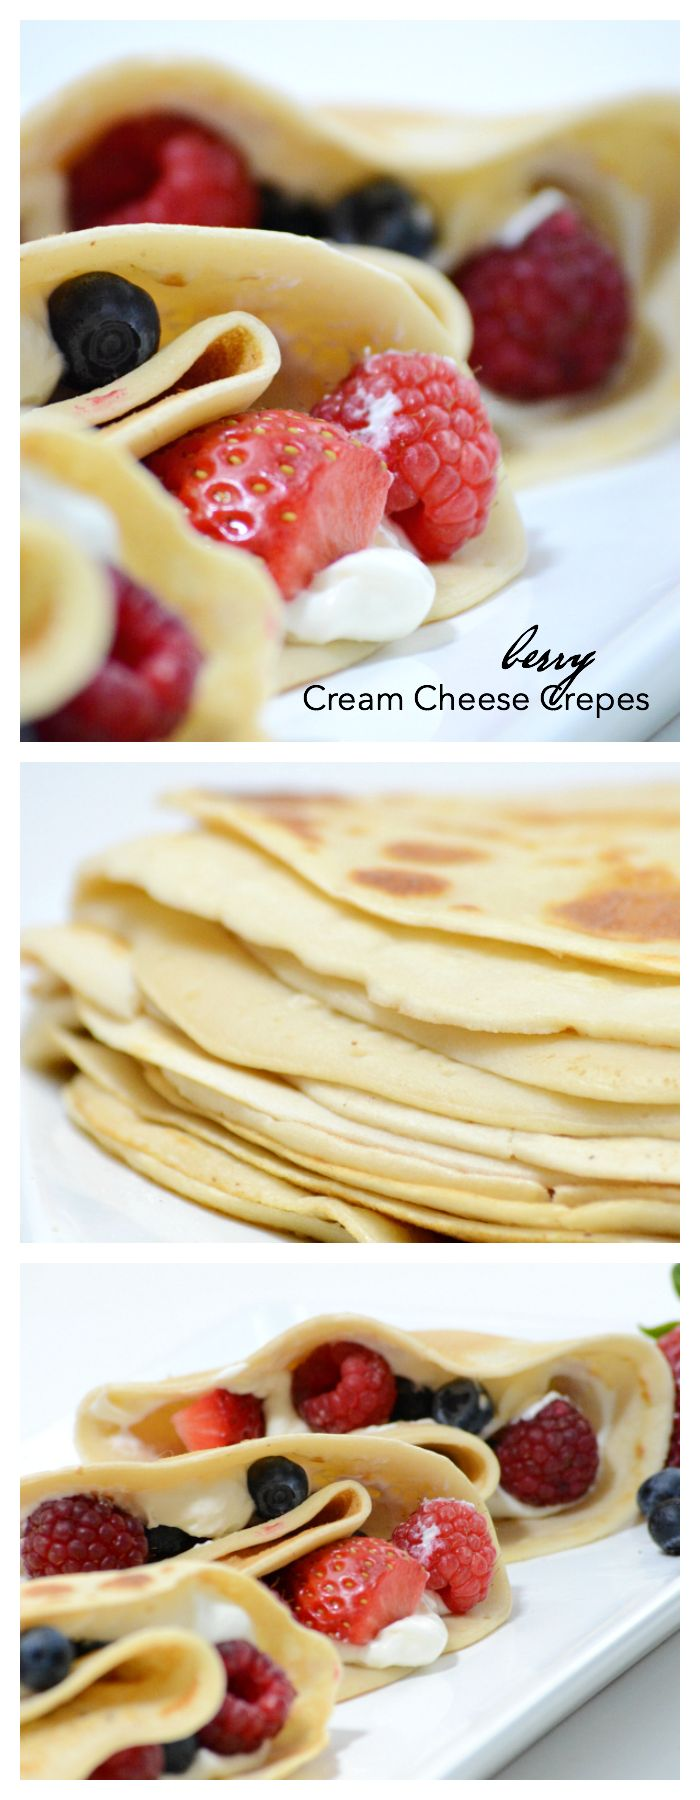 Recipes | Make these Berry Cream Cheese Crepes for Breakfast or a Brunch. The BEST Crepe Recipe we have found! Make them sweet or savory!